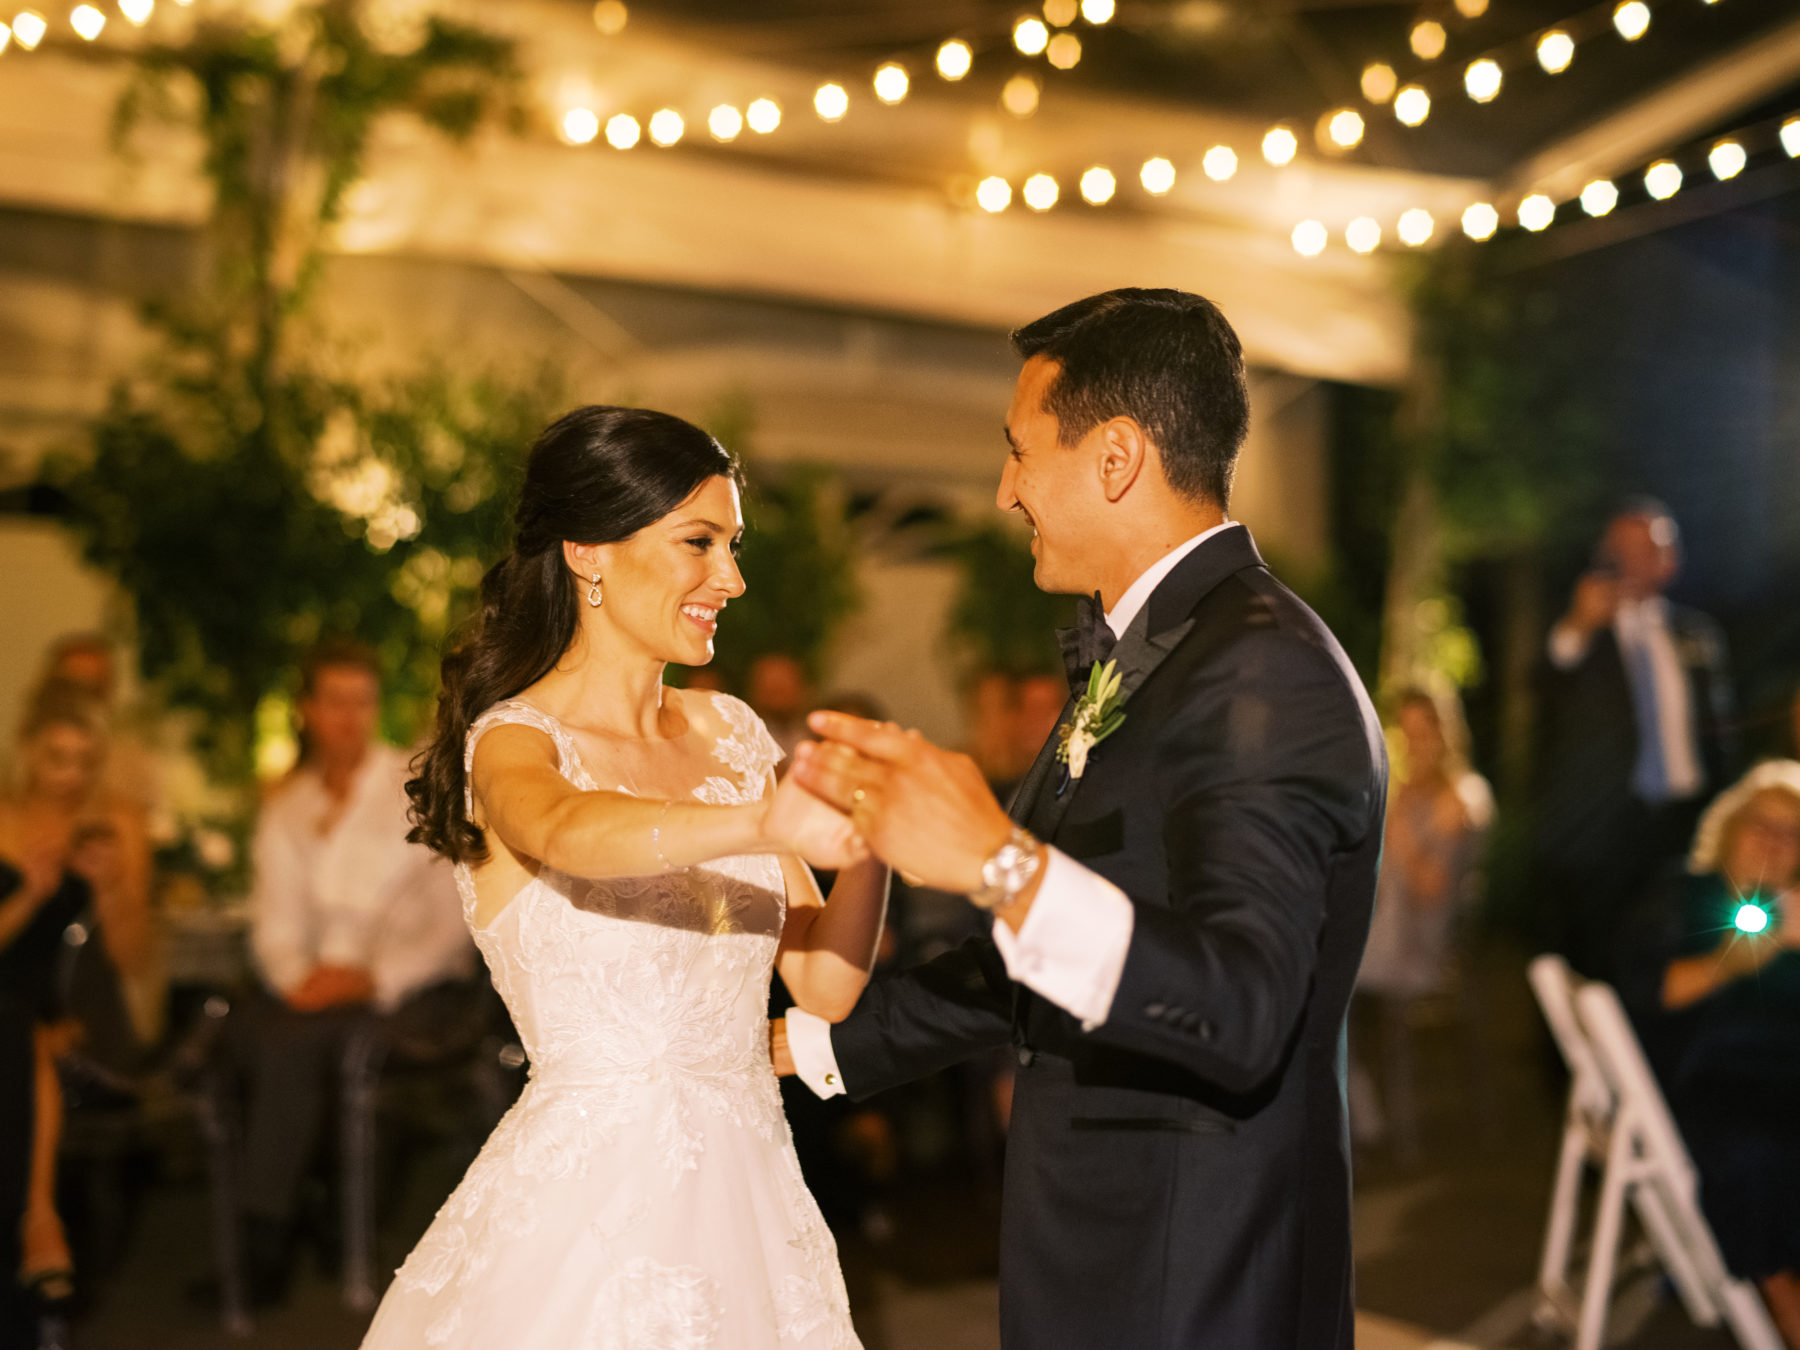 Bride and groom's first dance captured by Nathan Westerfield